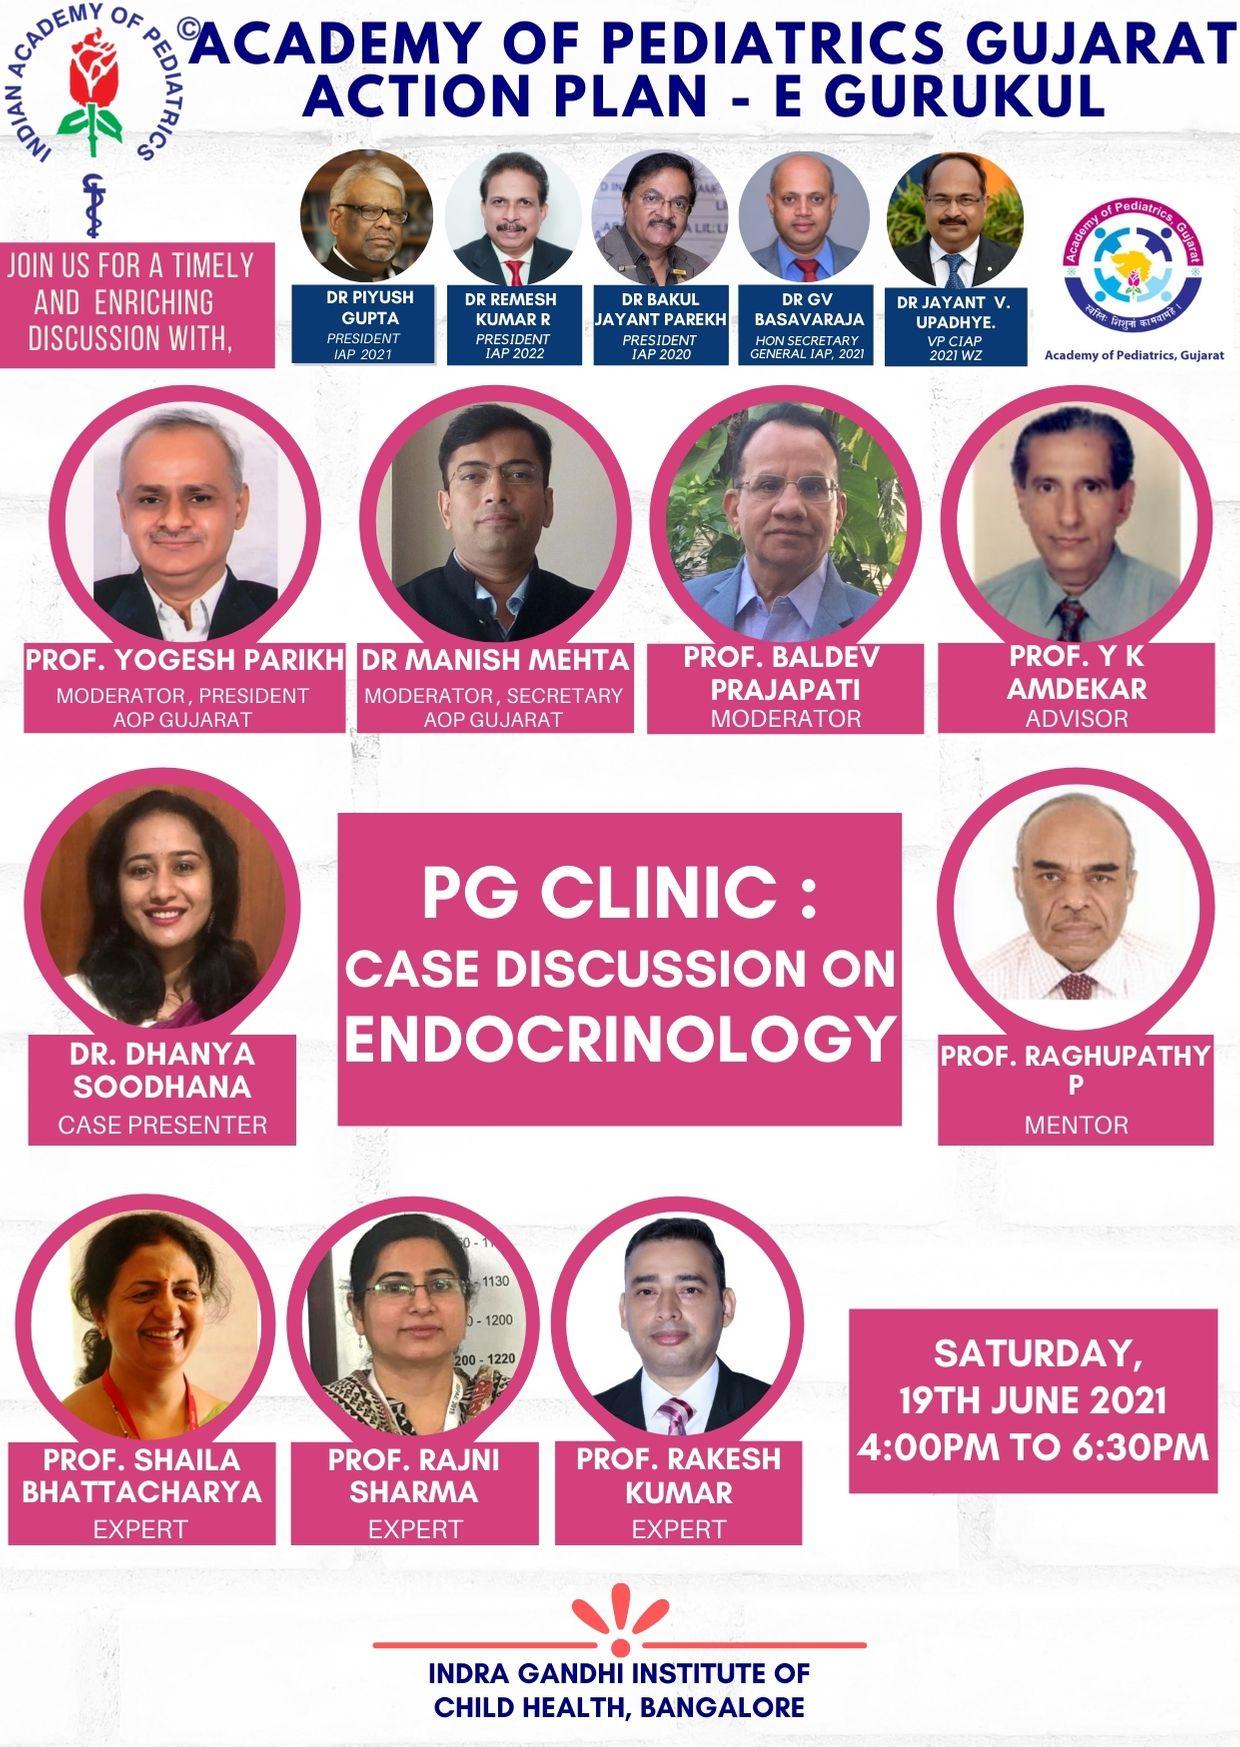 19th-June-AOP-Gujarat-Action-Plan-PG-clinic-Case-Discussion-on-Endocrinology